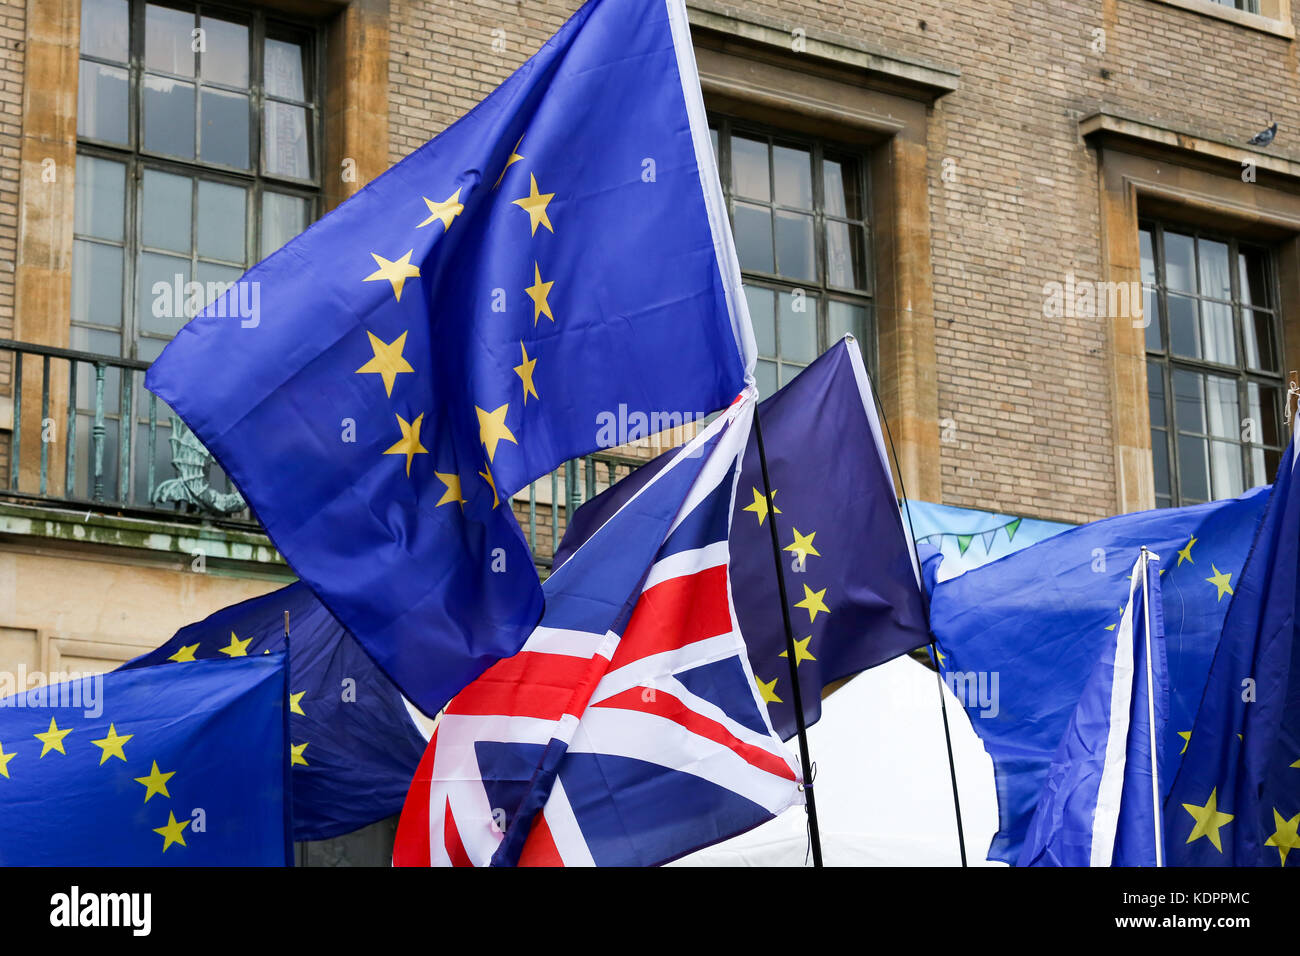 Cambridge, UK. 14th Oct, 2017.  Demonstration outside Guildhall in Market Square, Cambridge, to say no to Brexit. - Stock Image